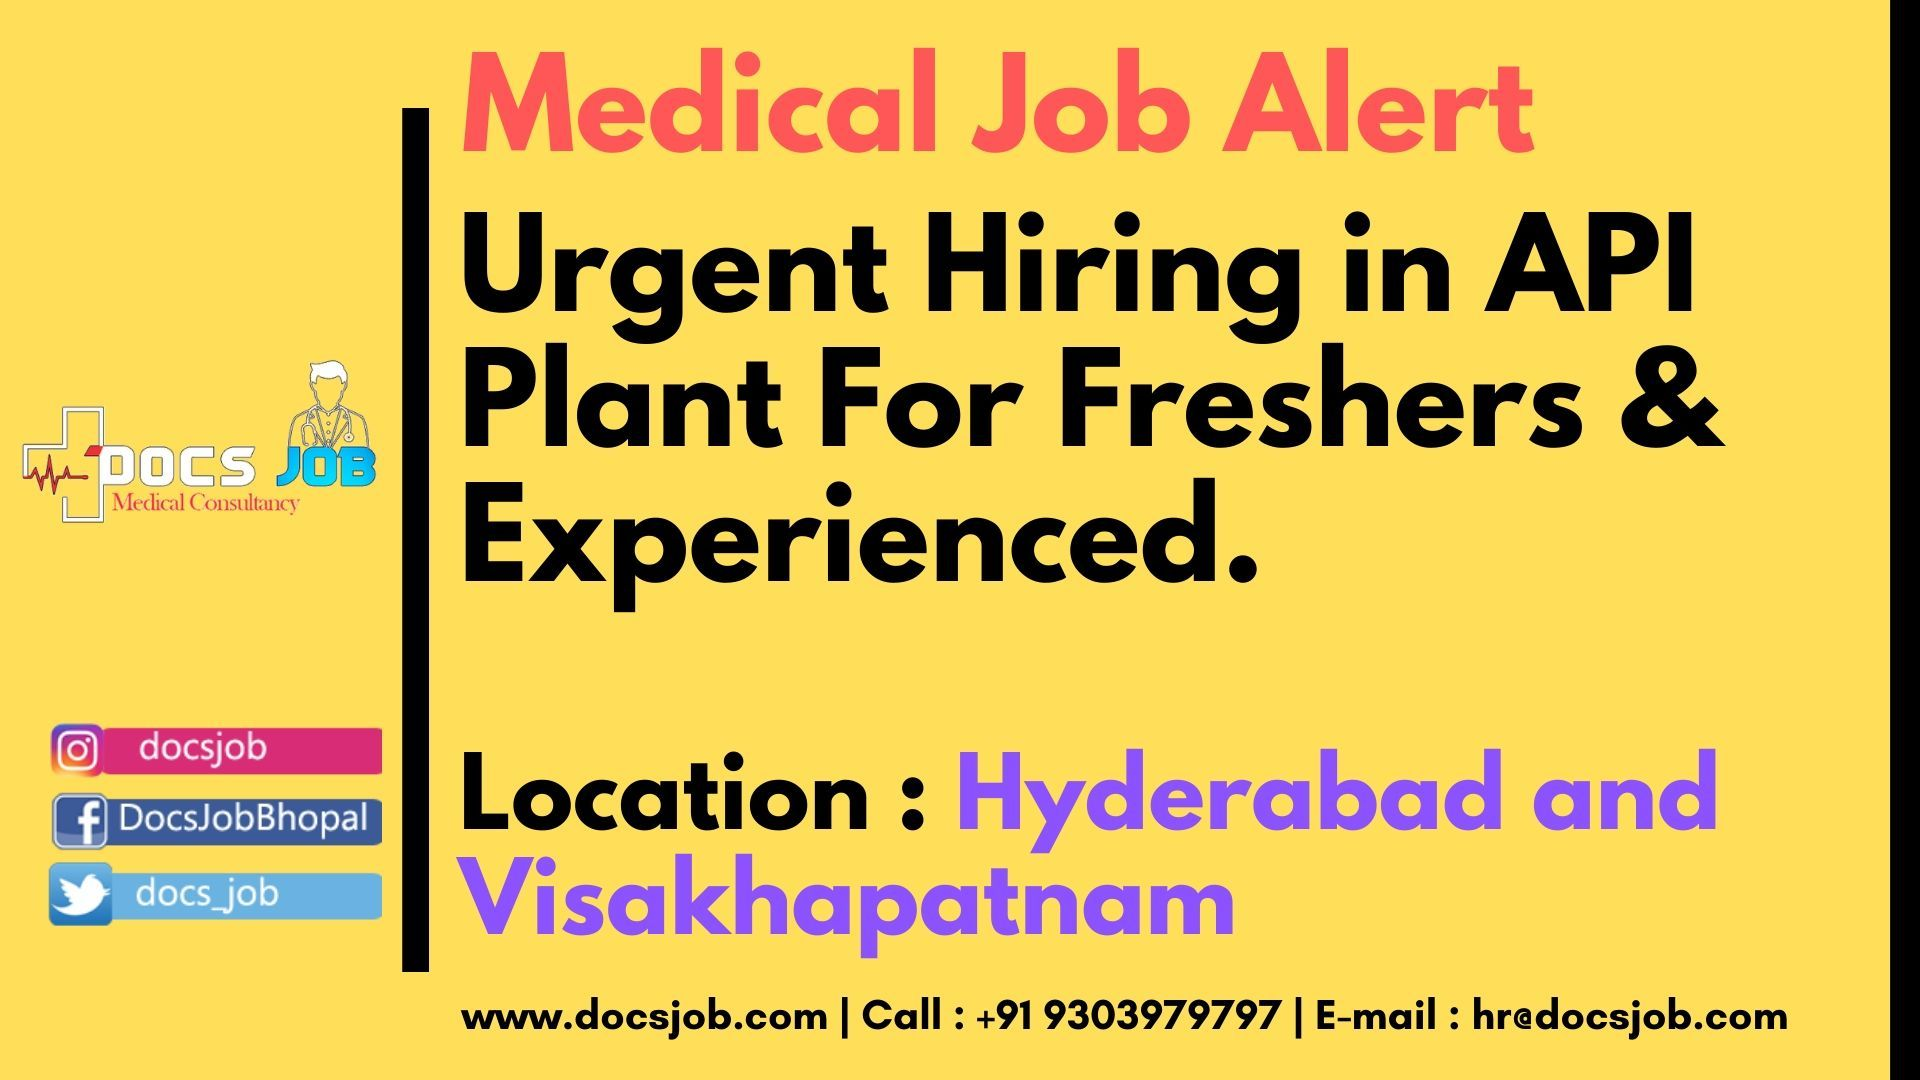 Urgent hiring in API Plant For Freshers & Experienced